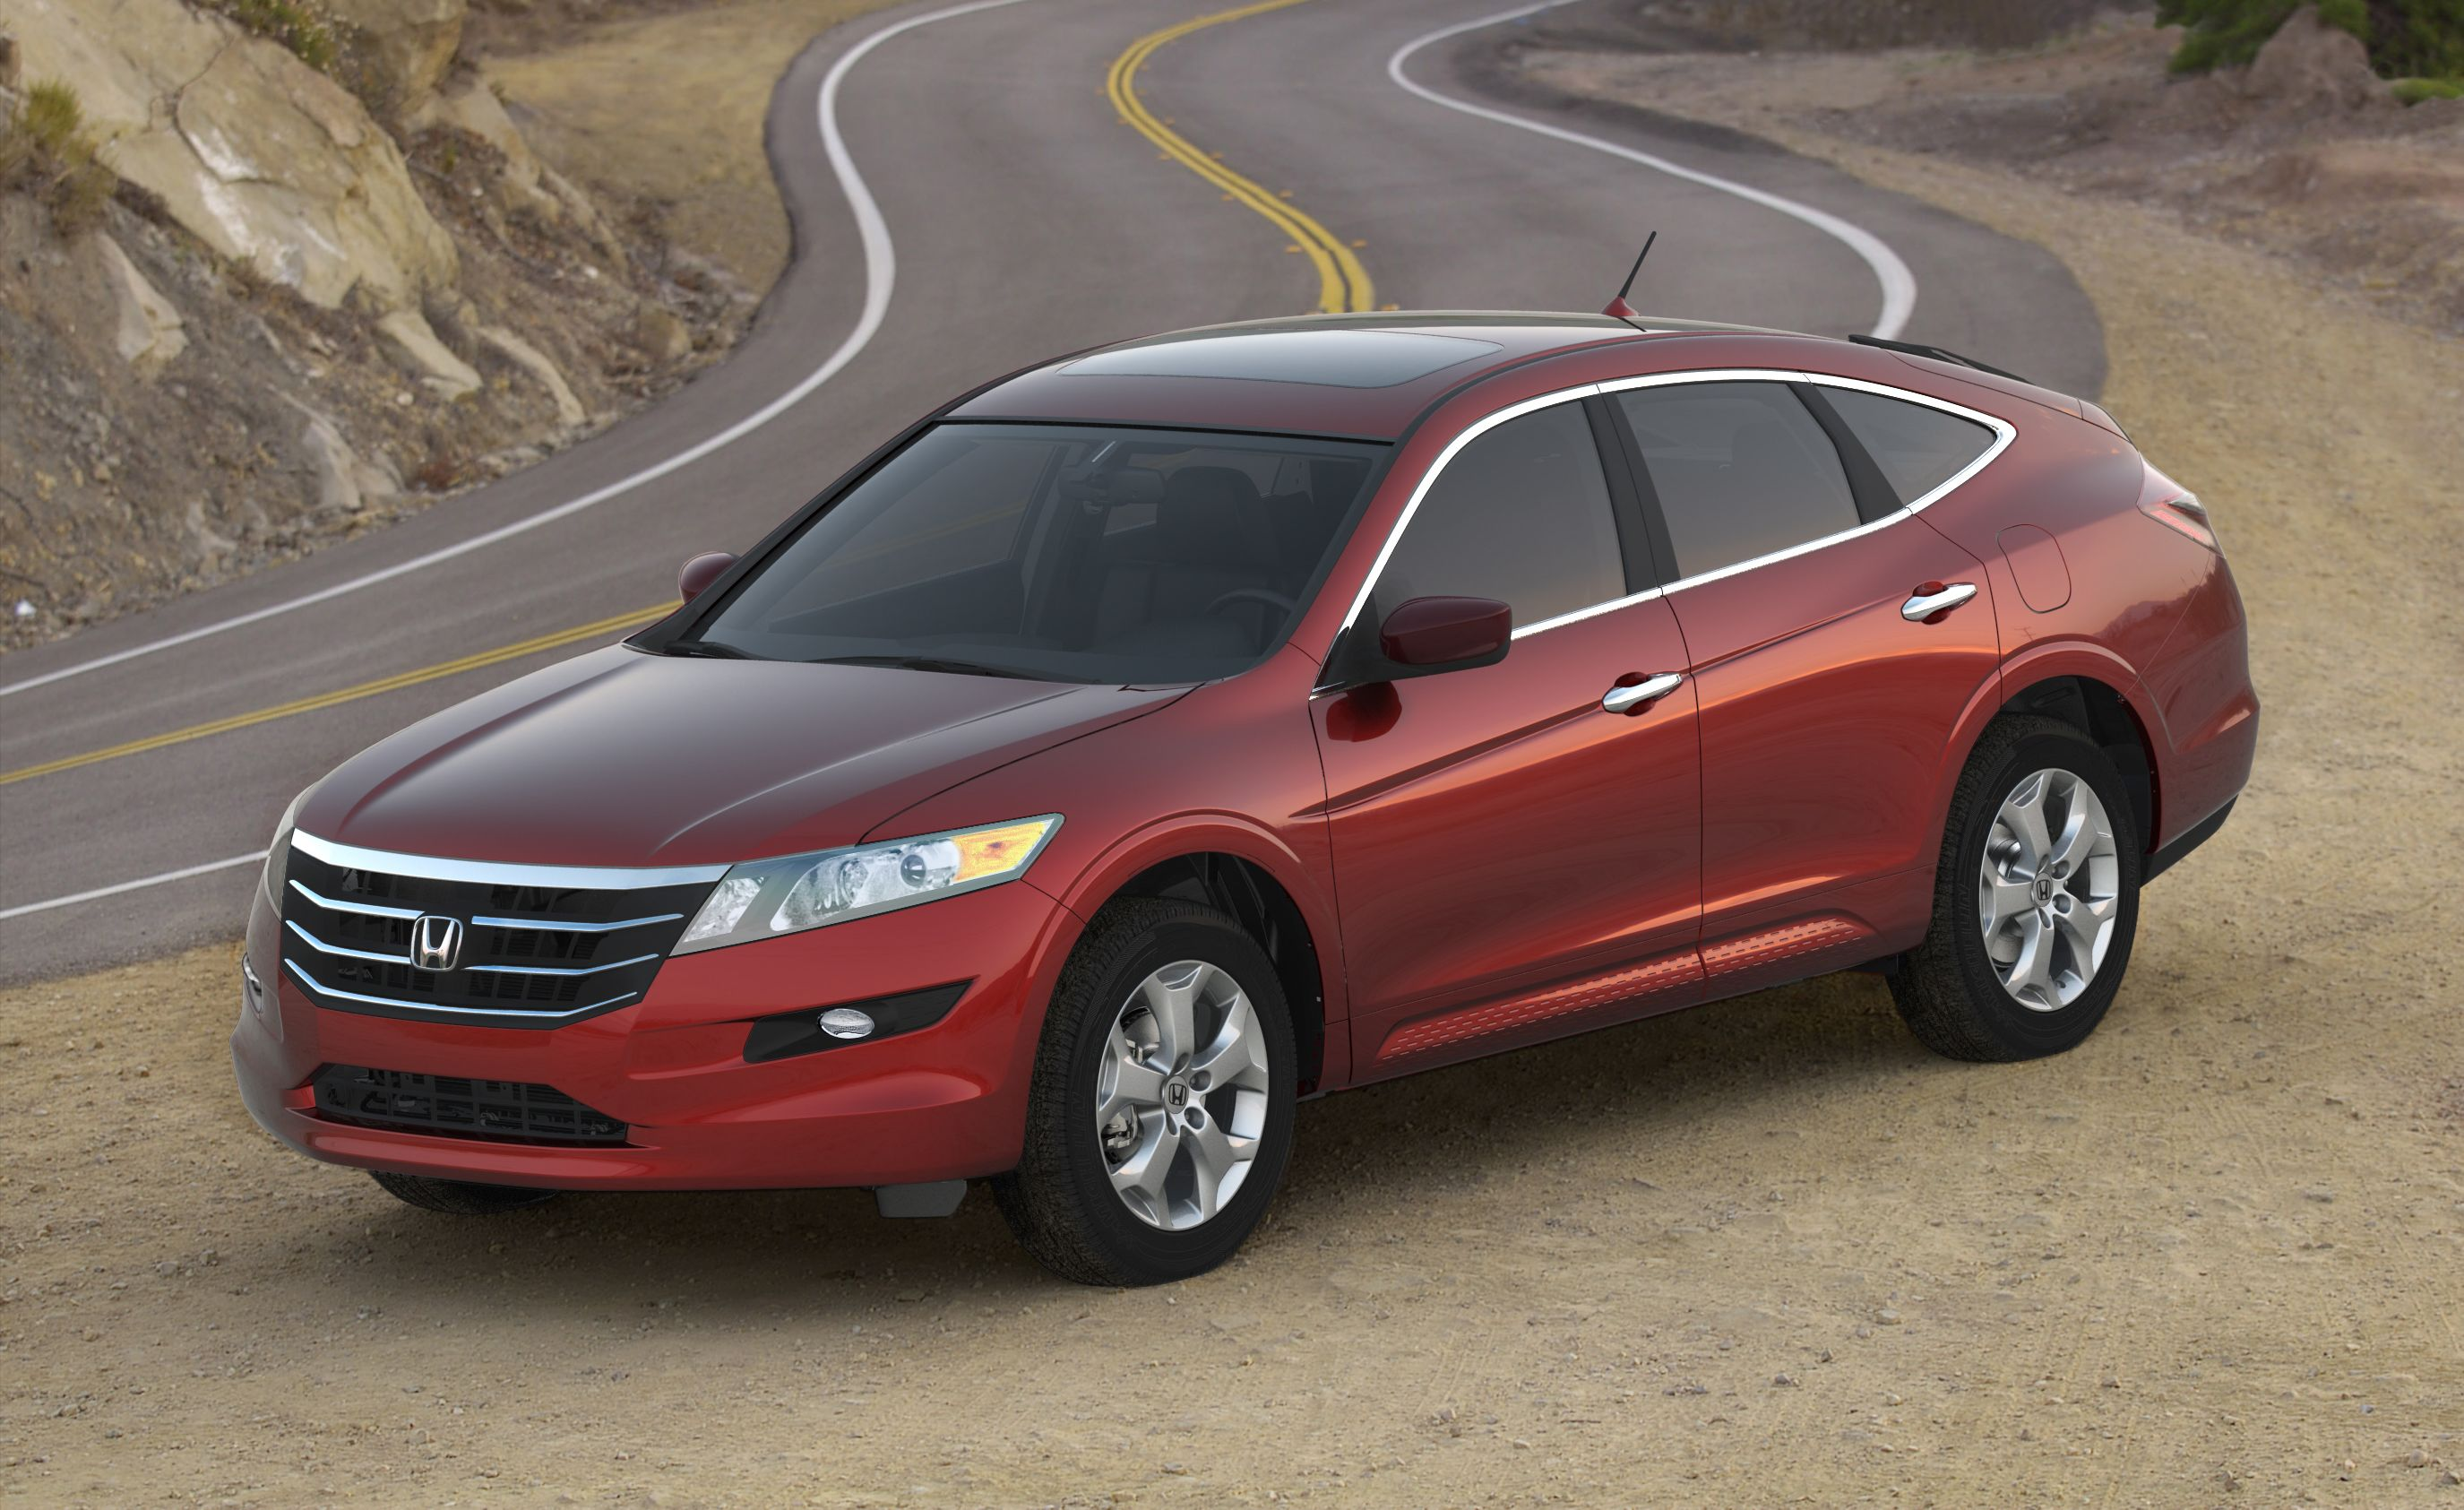 """Honda Crosstour (2010–2015) Honda's design team must have shaped the 2010 Crosstour on a bet. As in, """"I bet we can make this new wagon/crossover look like a Platypus and the executives will still sign off on it."""""""